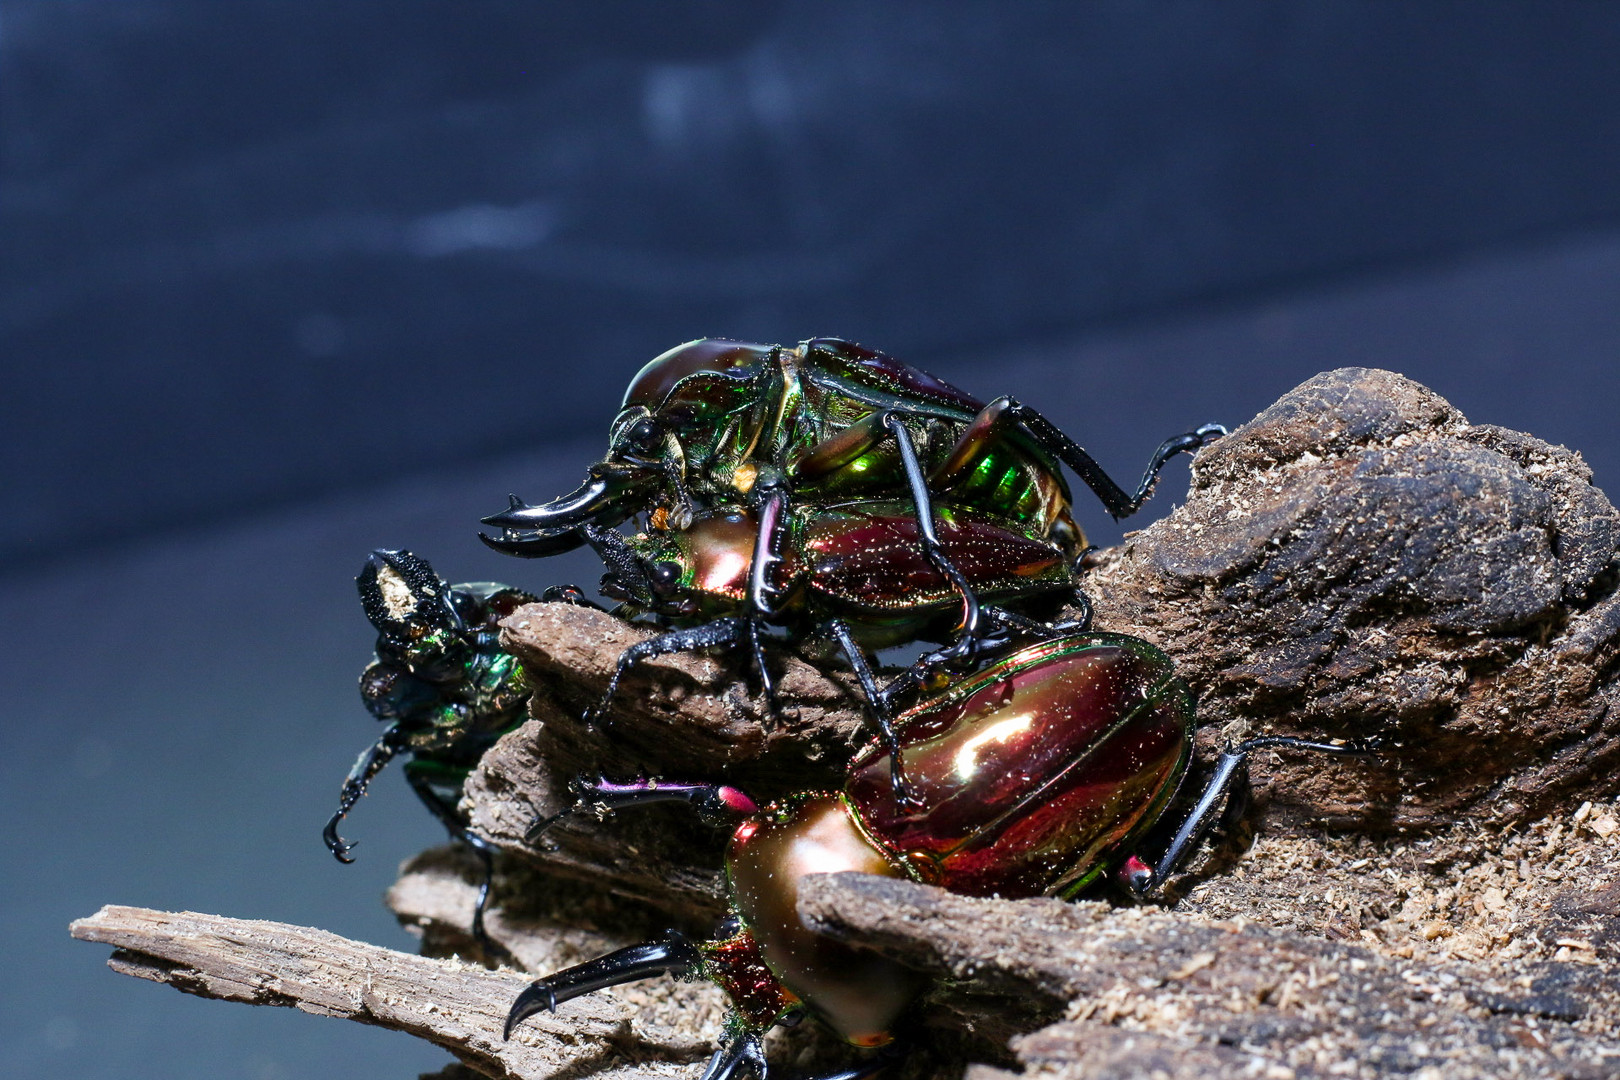 Mating and Variation